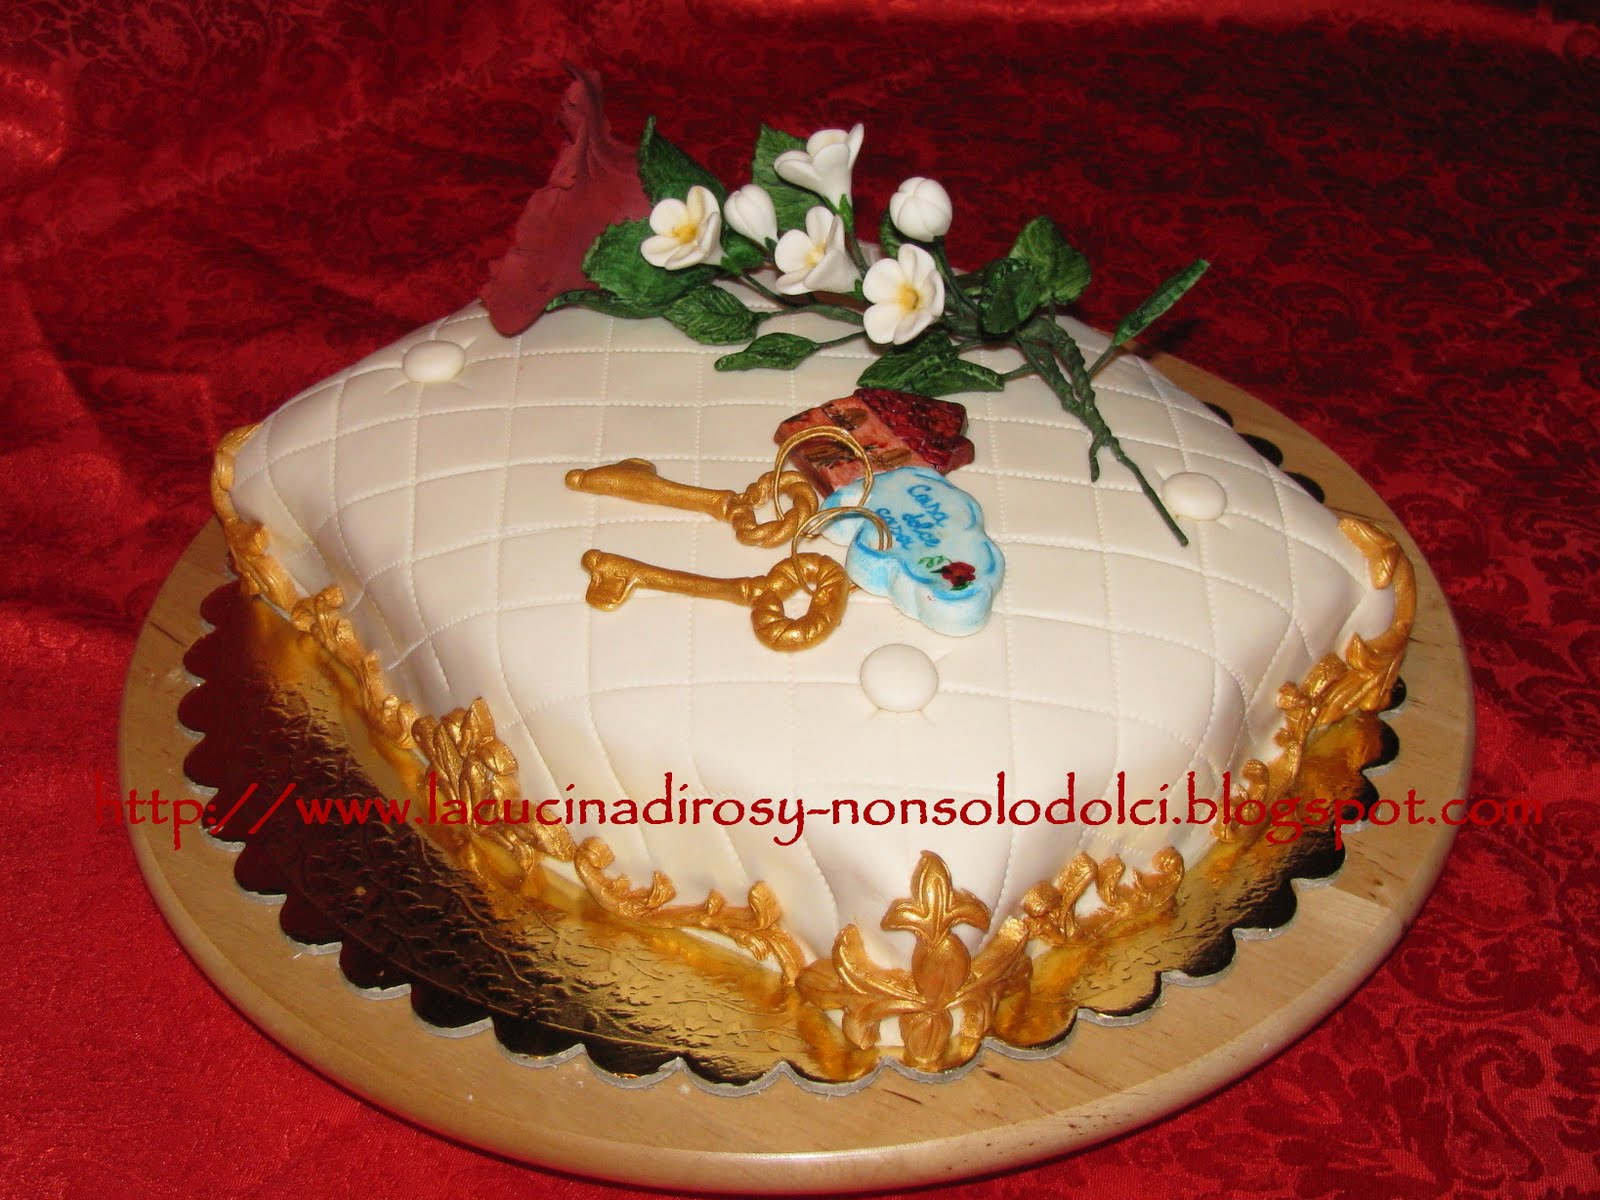 Le torte decorate di rosy torta casa dolce casa for Decorazioni torte ladybug